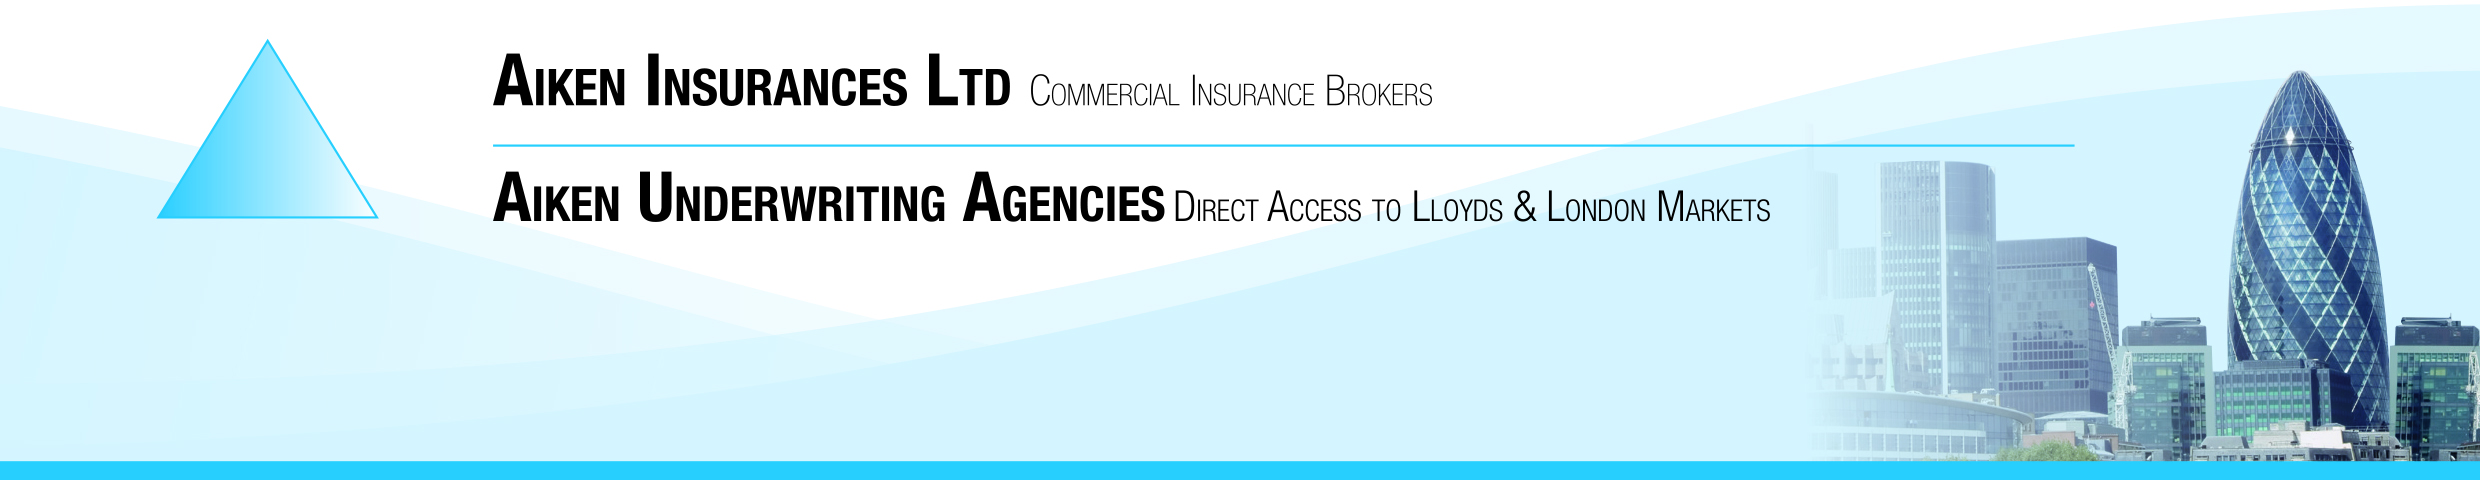 Launch of Aiken Insurances Ltd